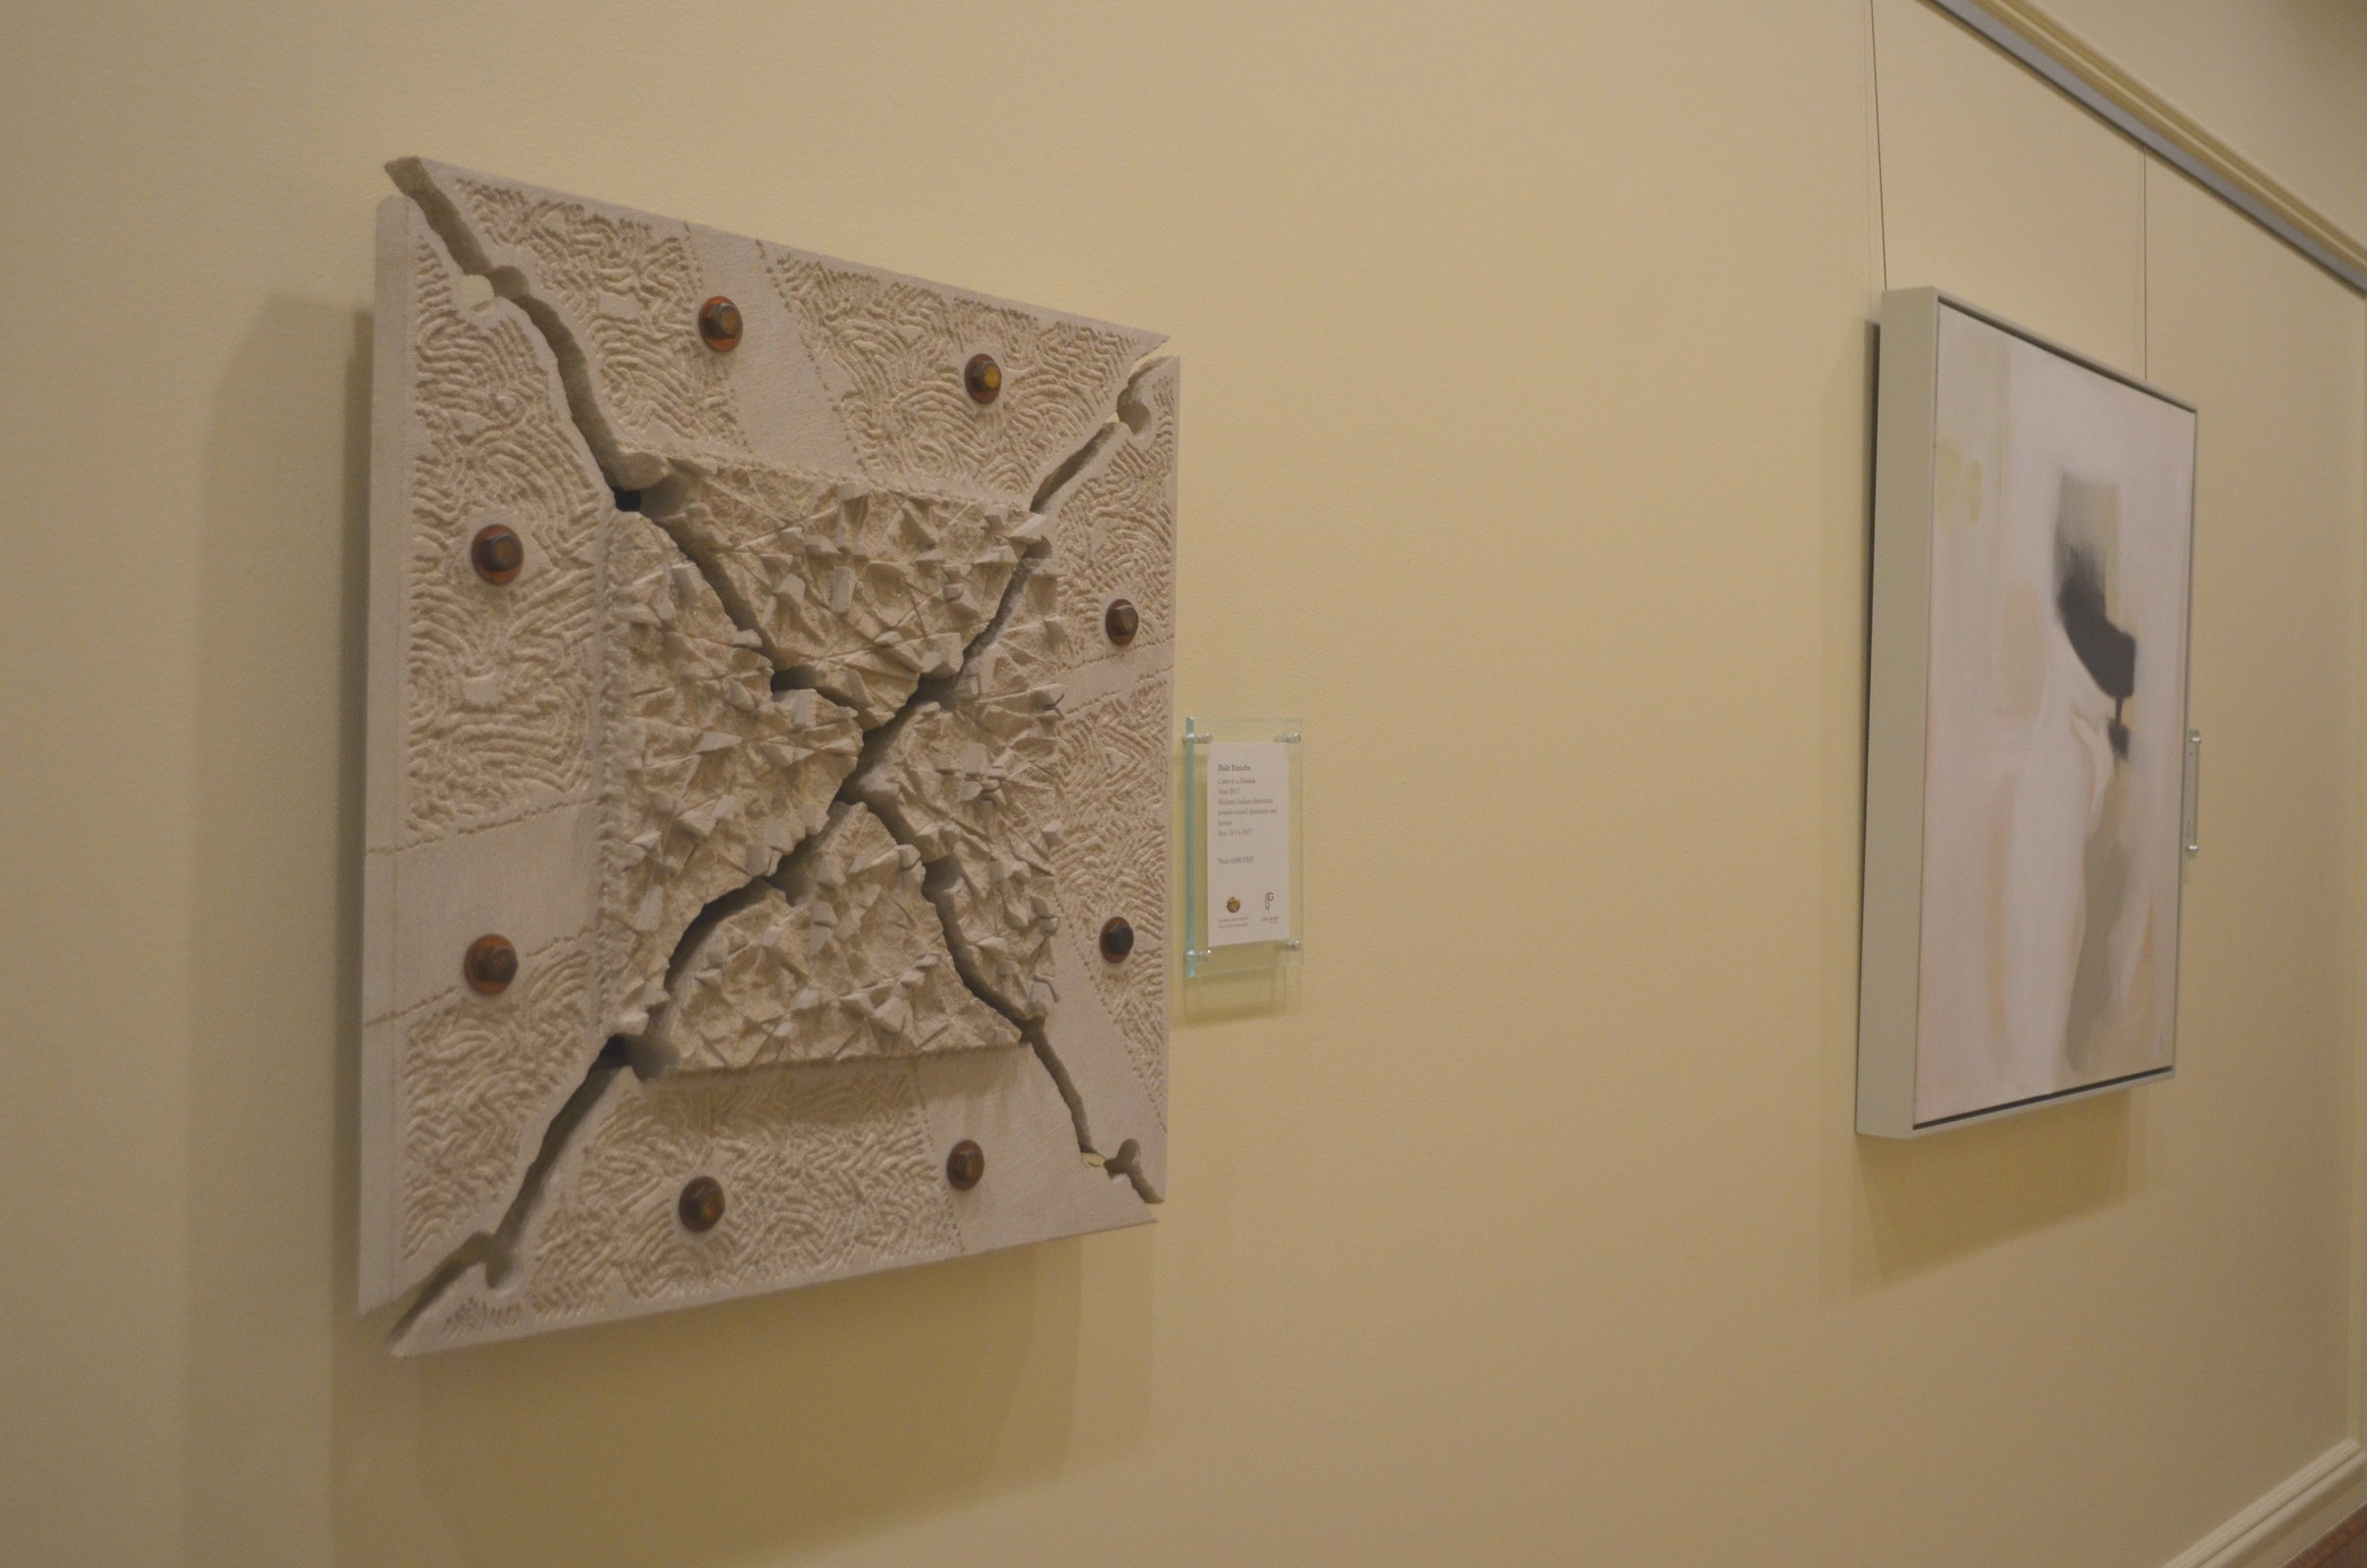 photo of center of a mandala by dale encohs with amy kirchner's white square